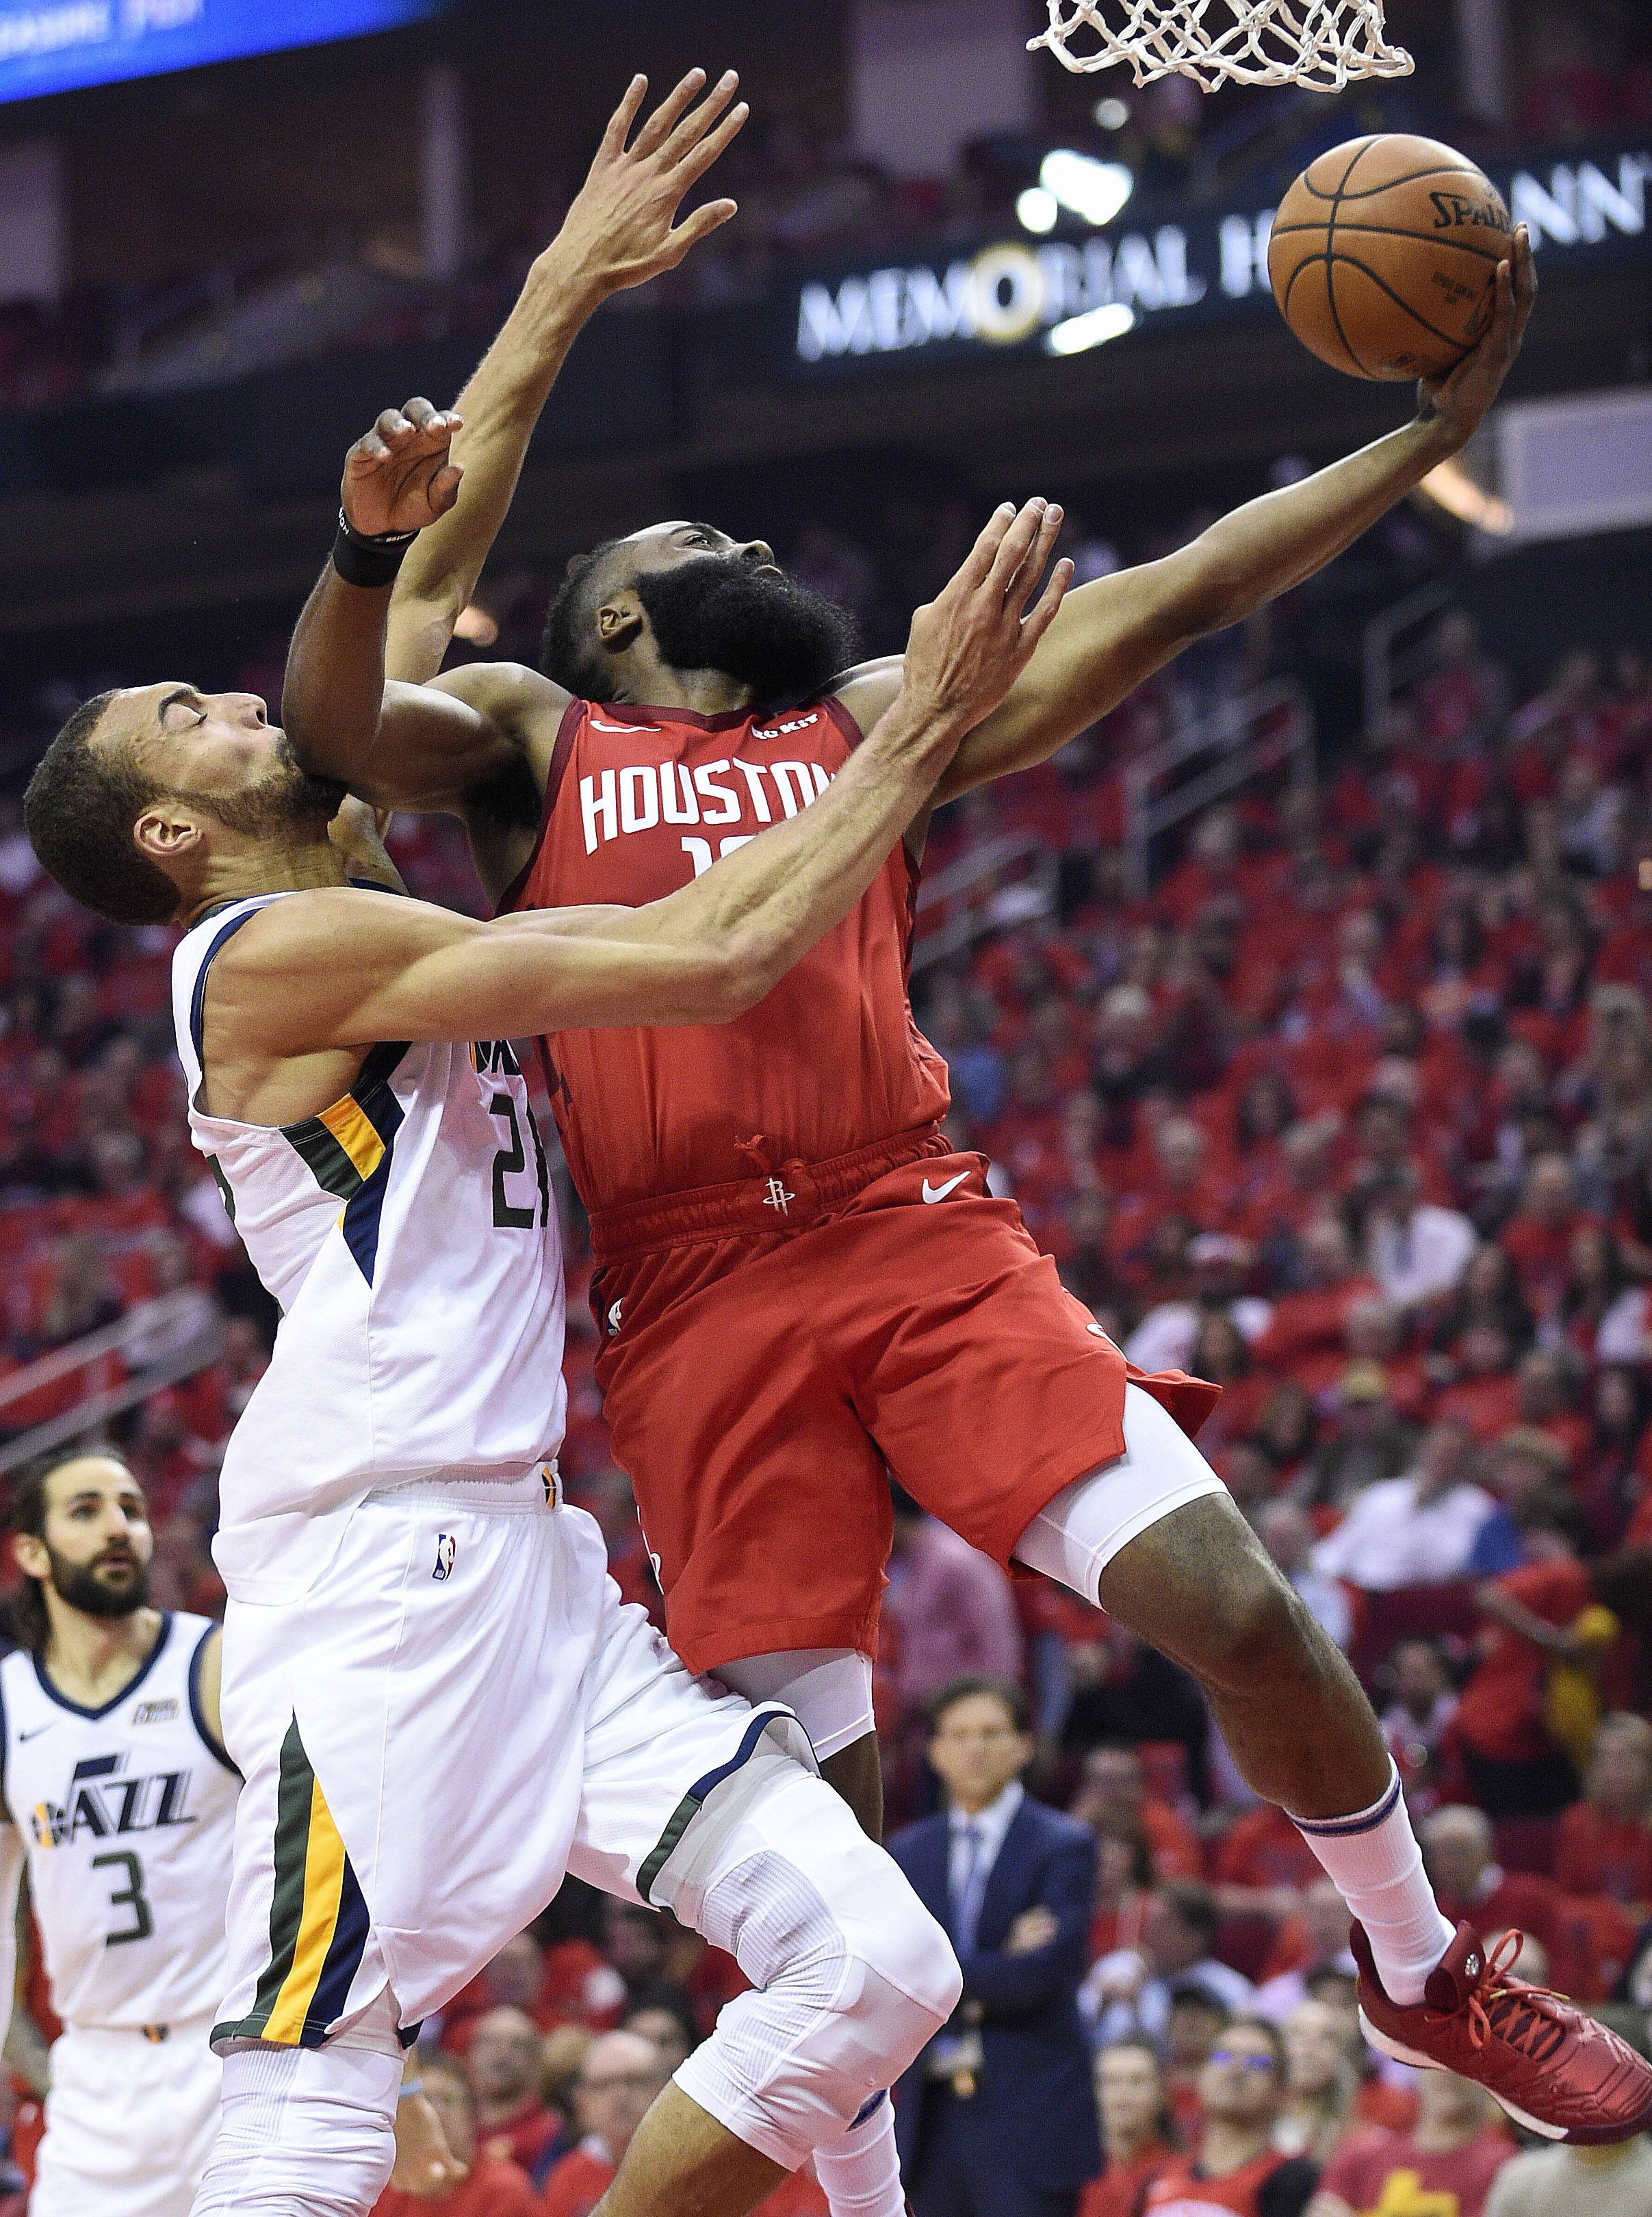 Houston Rockets guard James Harden, right, drives to the basket as Utah Jazz center Rudy Gobert defends during the first half of Game 1, Sunday in Houston. Harden averaged 36.1 points this season